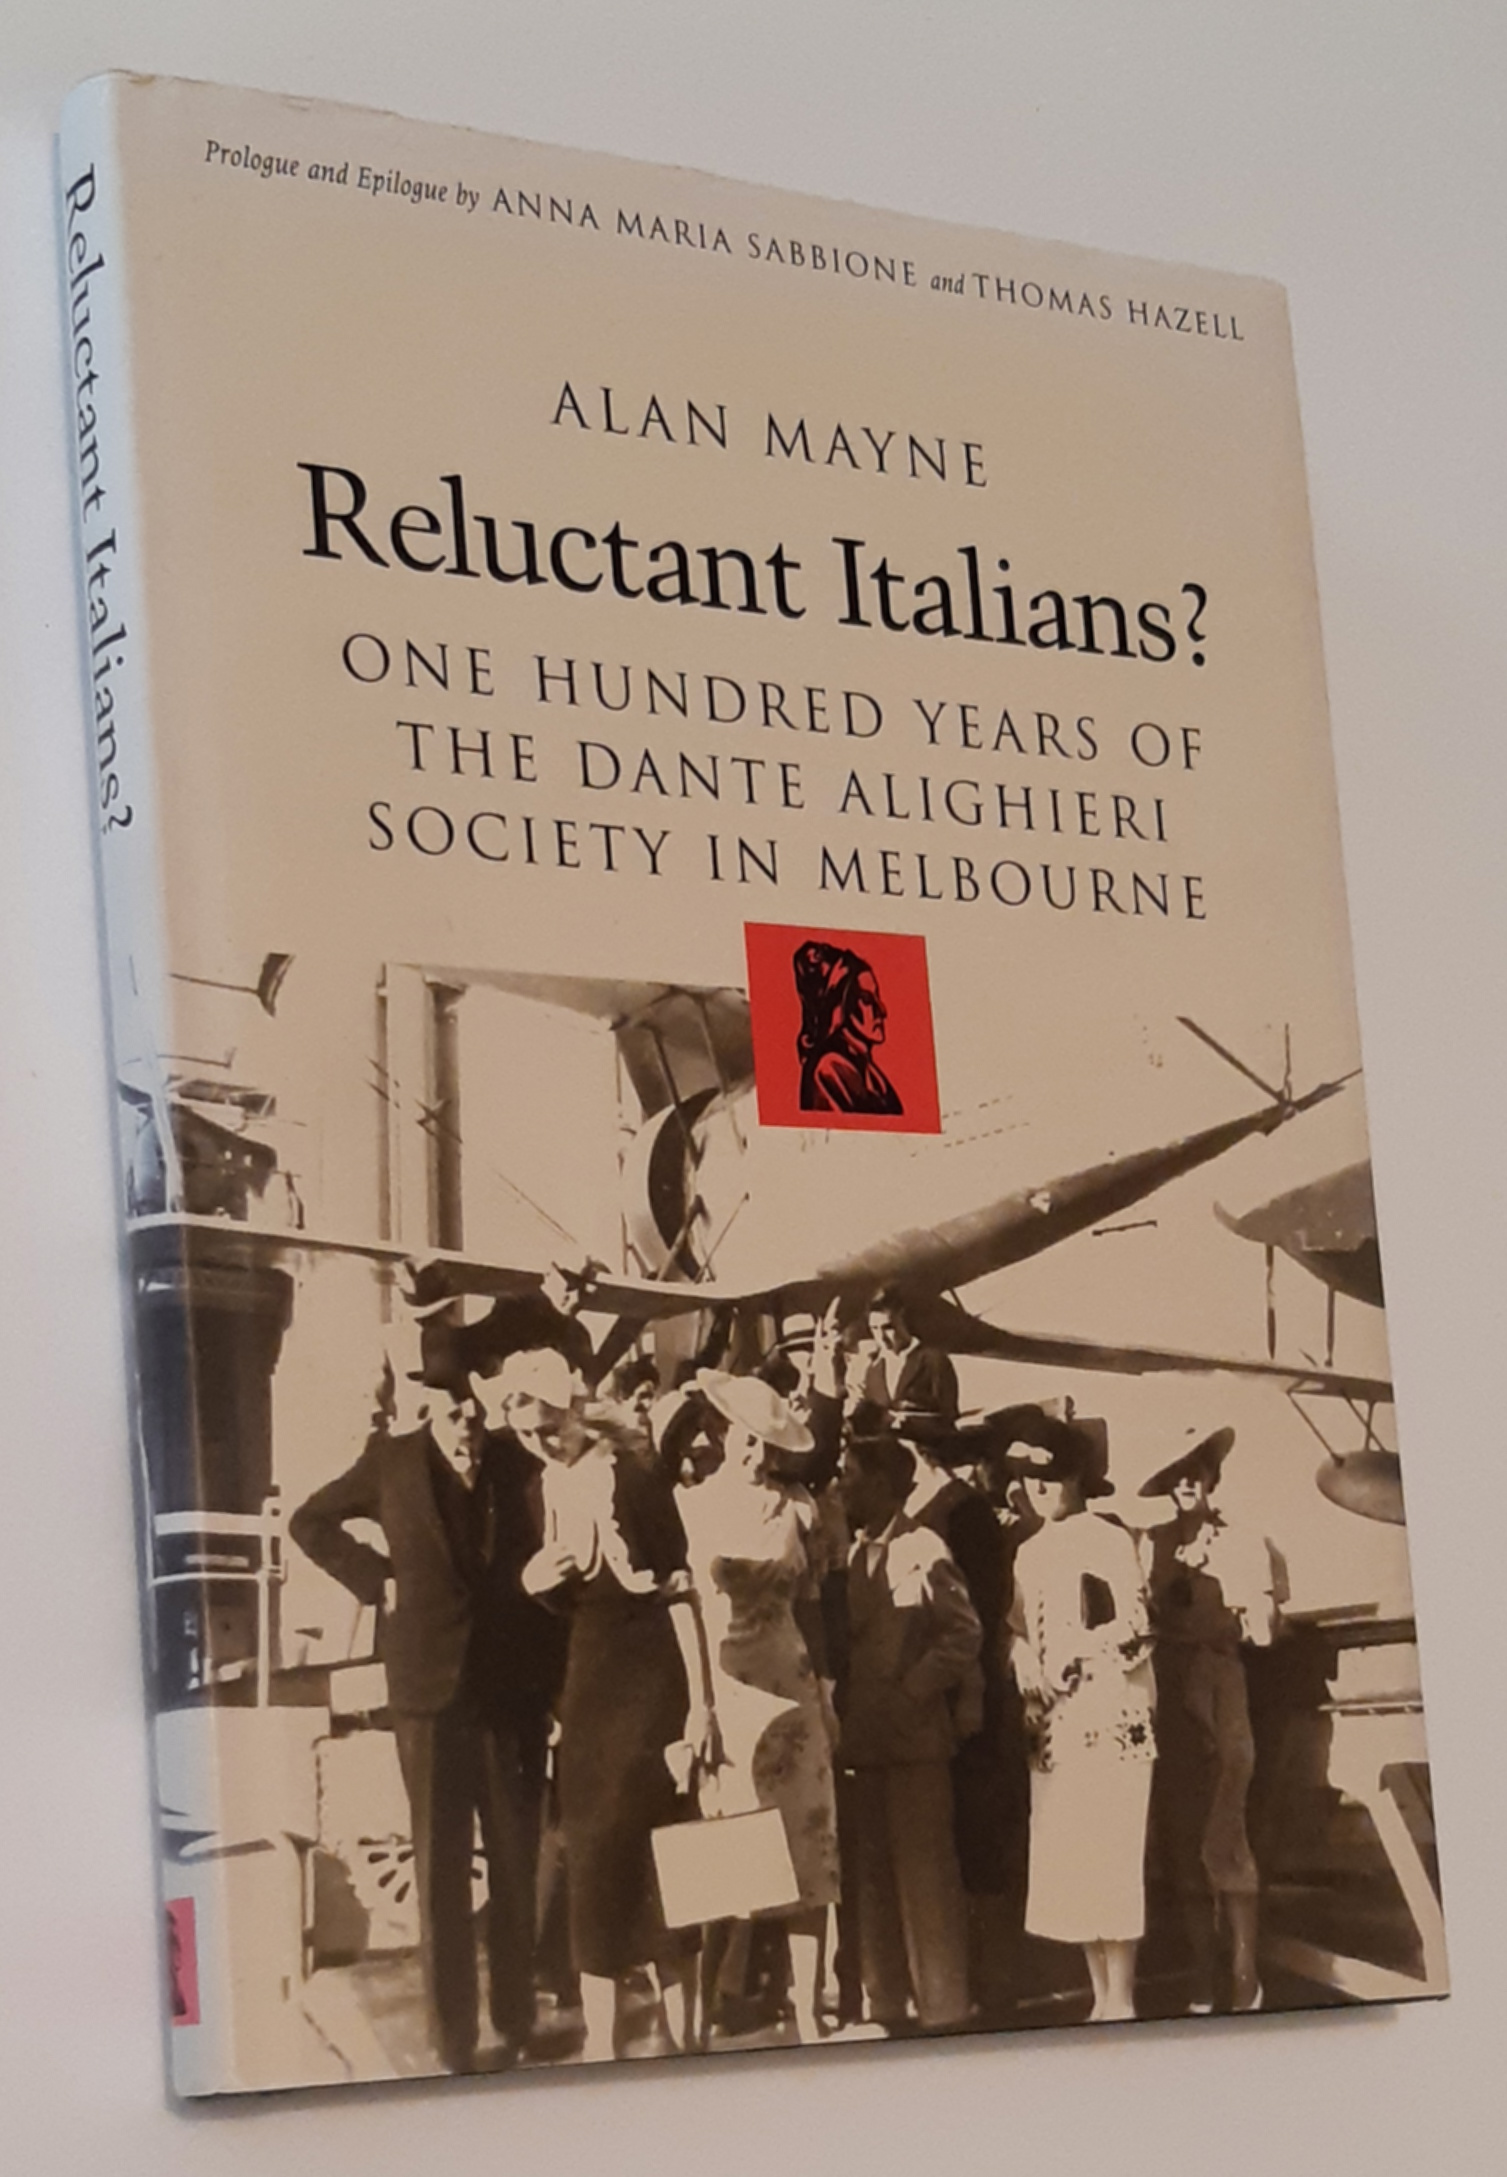 Image for RELUCTANT ITALIANS? One Hundred Years of the Dante Alighieri Society in Melbourne 1896-1996